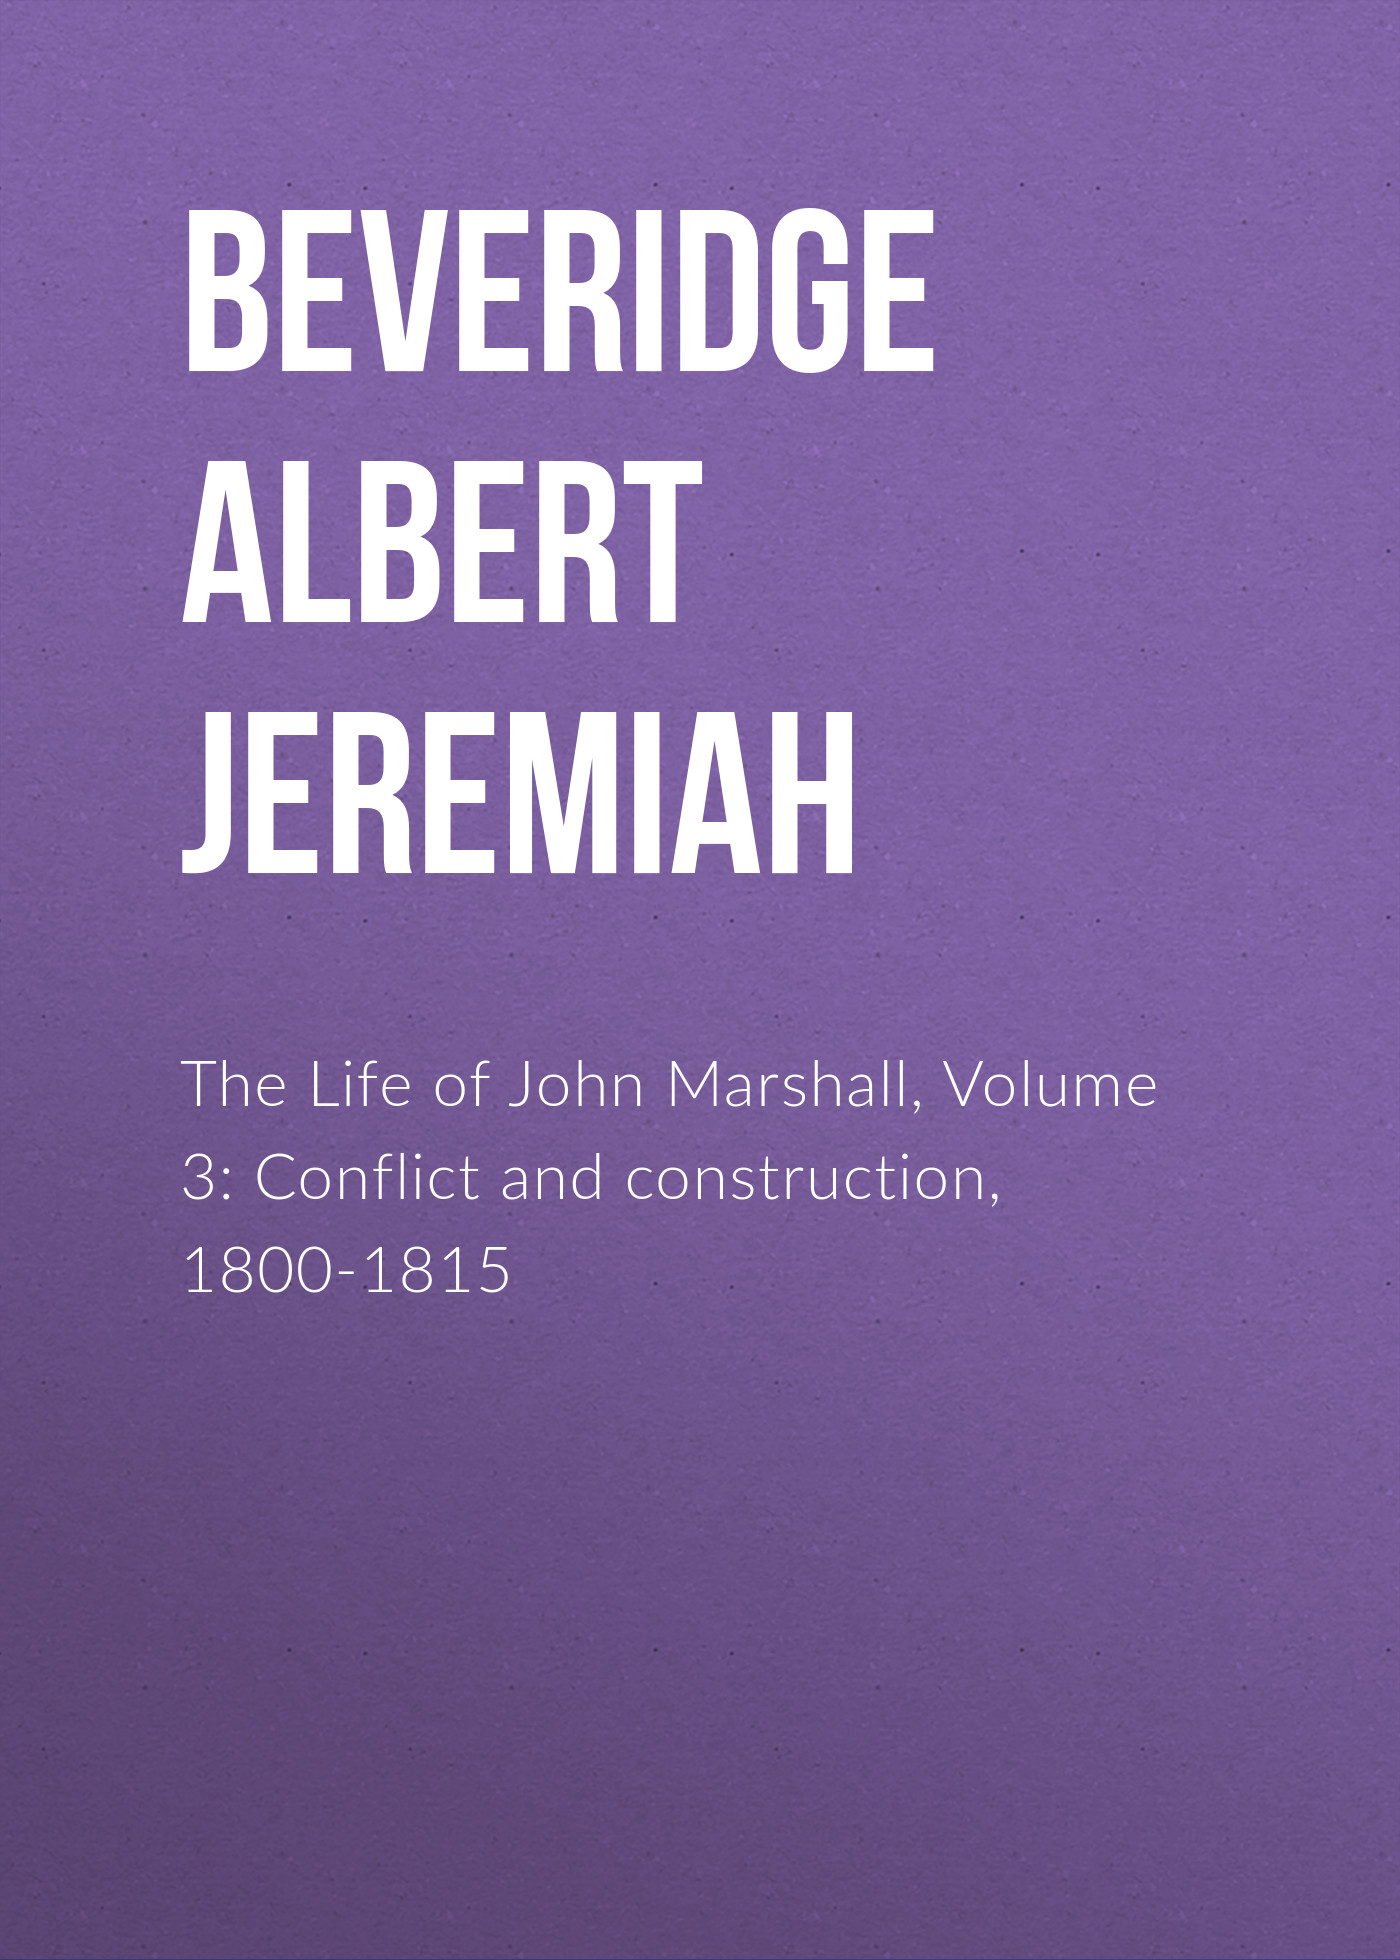 Beveridge Albert Jeremiah The Life of John Marshall, Volume 3: Conflict and construction, 1800-1815 основы общей психологии isbn 978 5 4461 1063 6